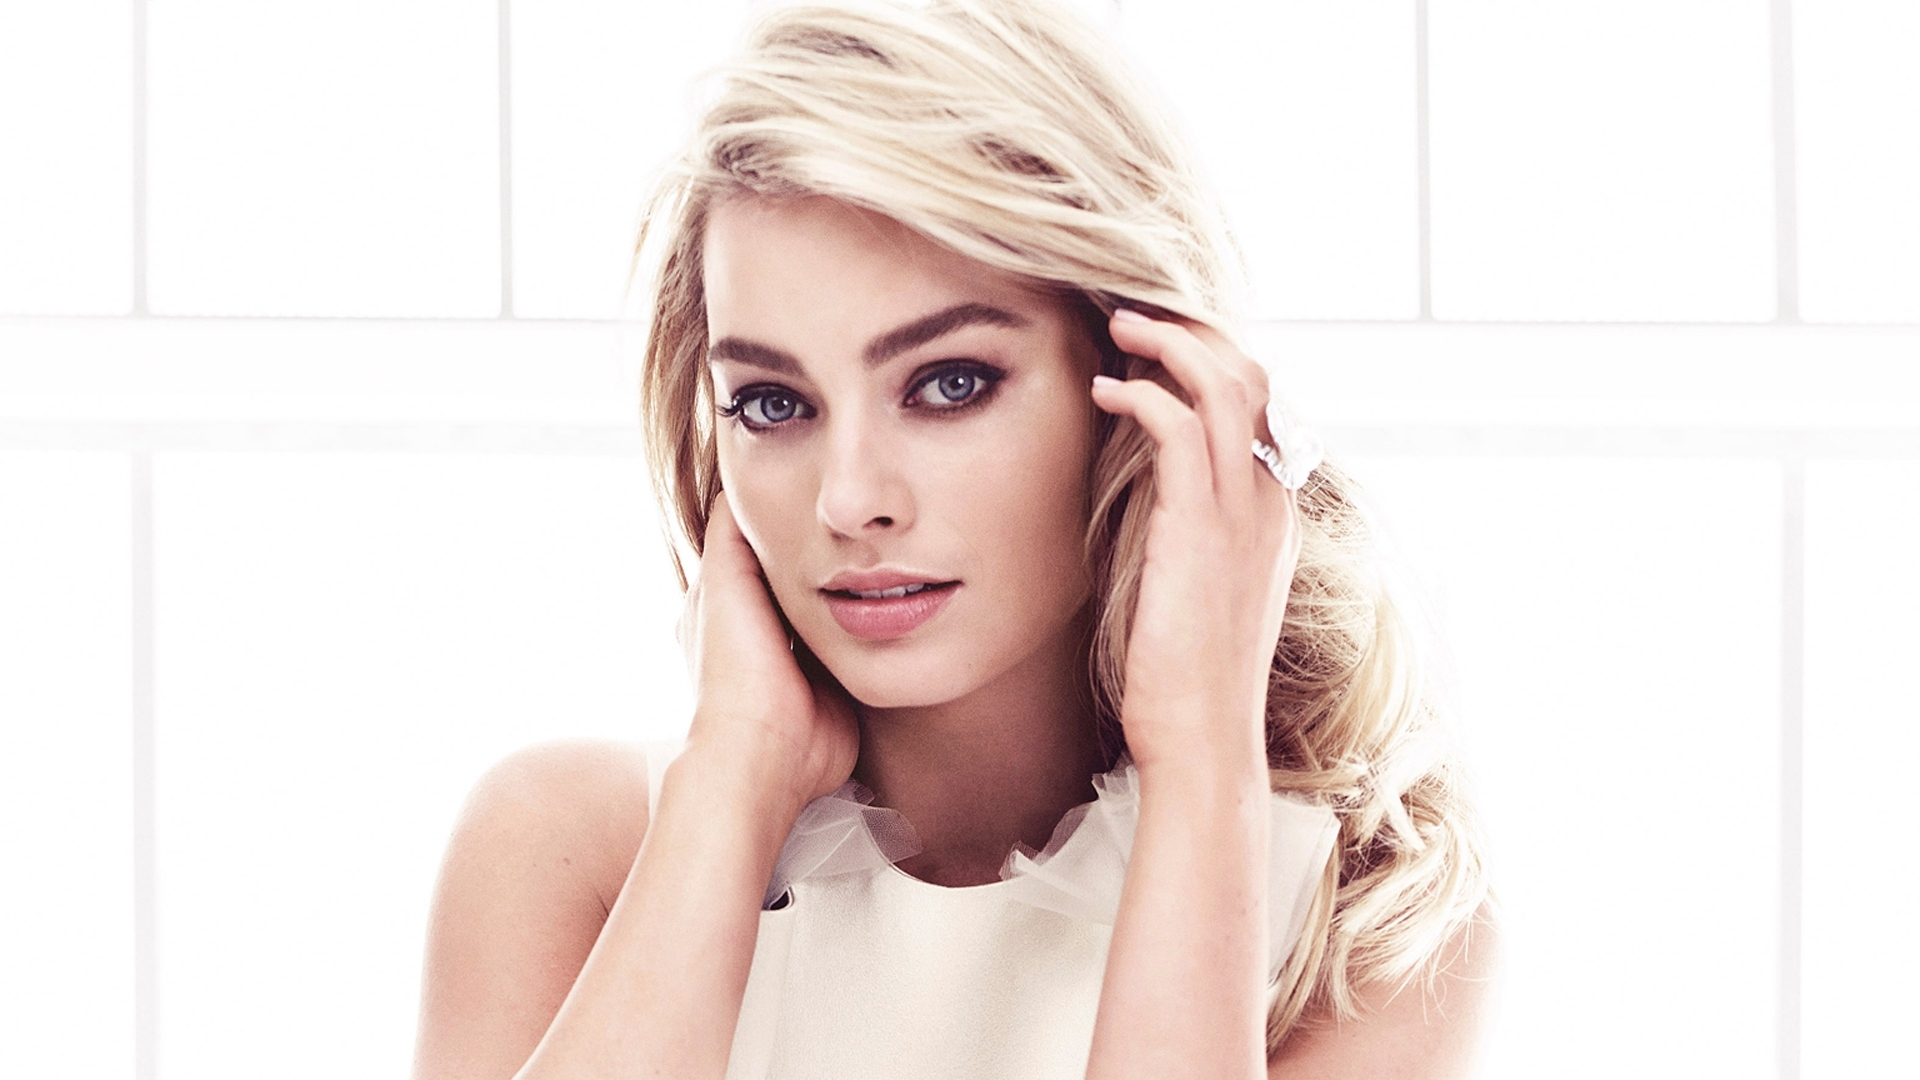 http://www.vactualpapers.com/gallery/lovely-margot-robbie